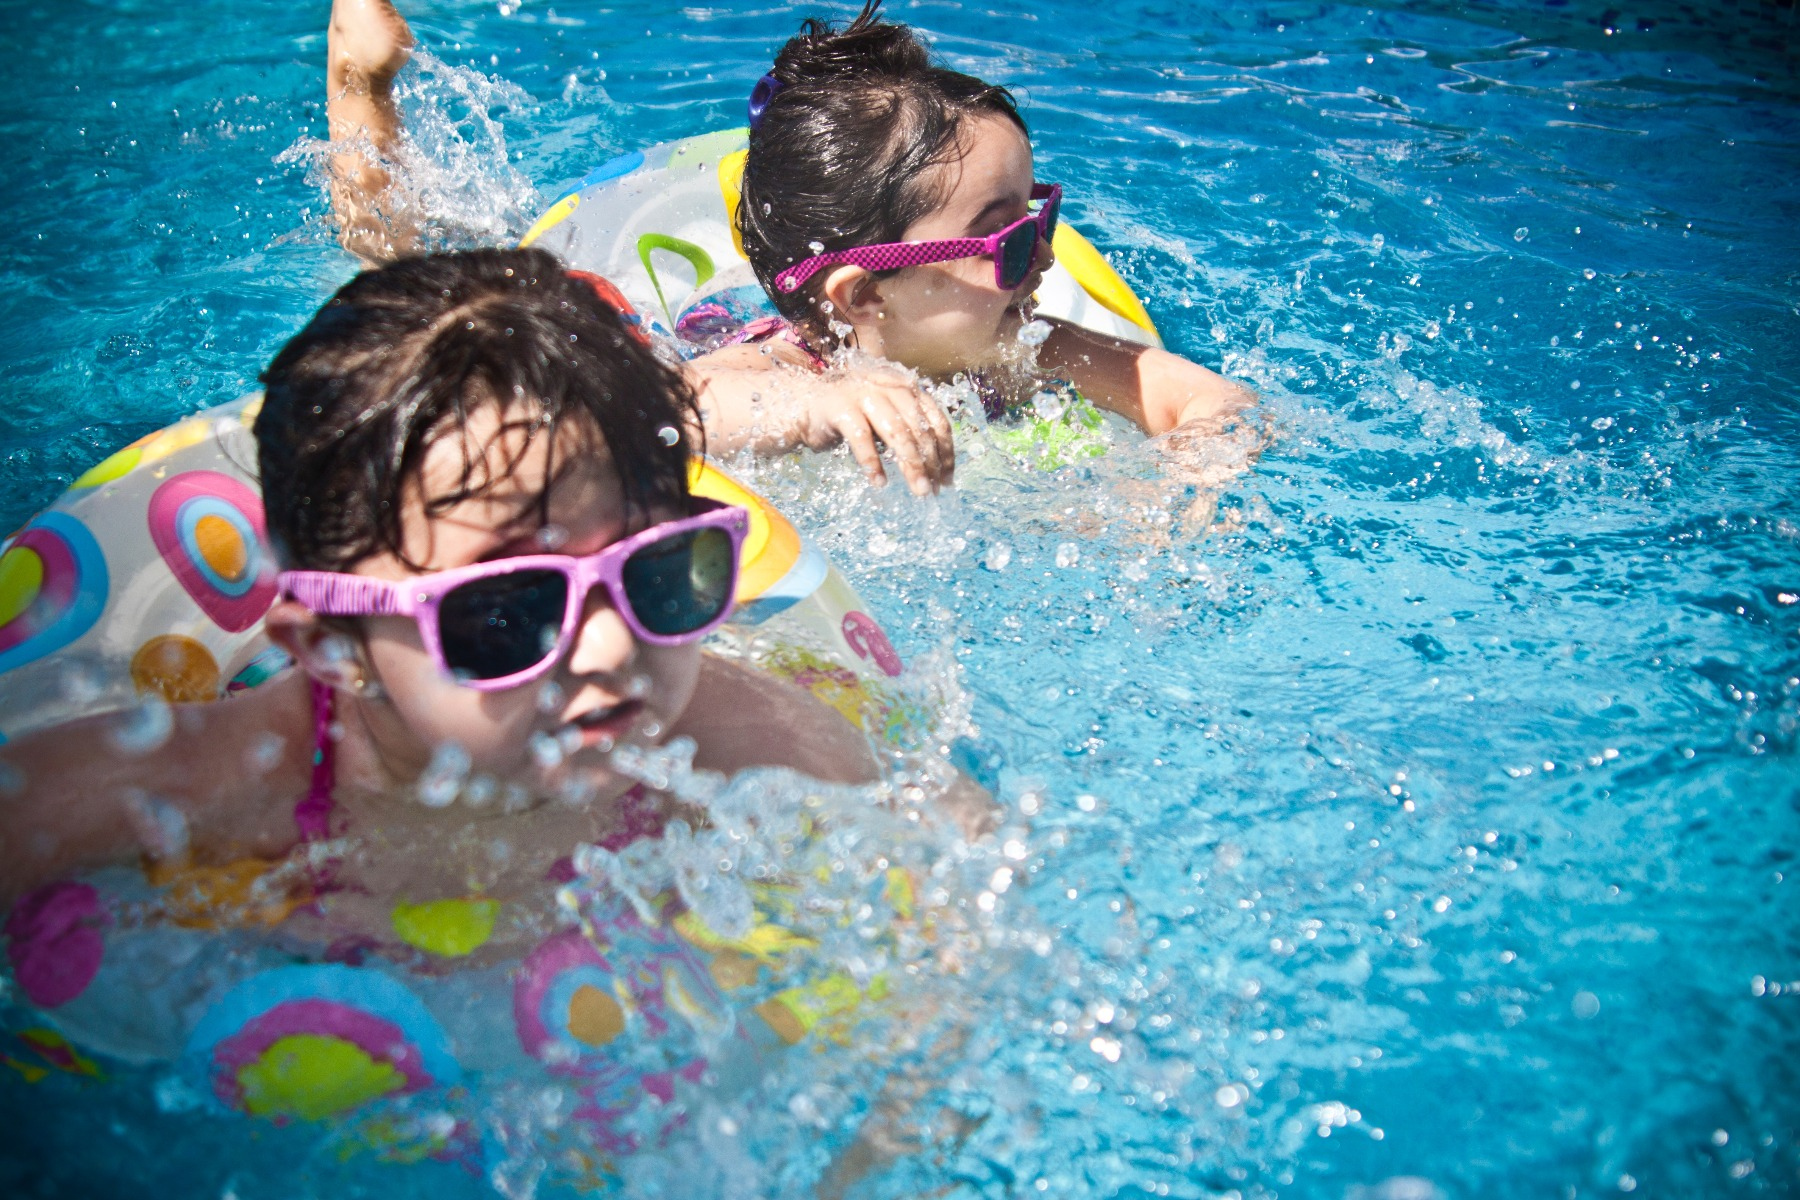 Teaching your kids to swim early will improve their confidence in the water